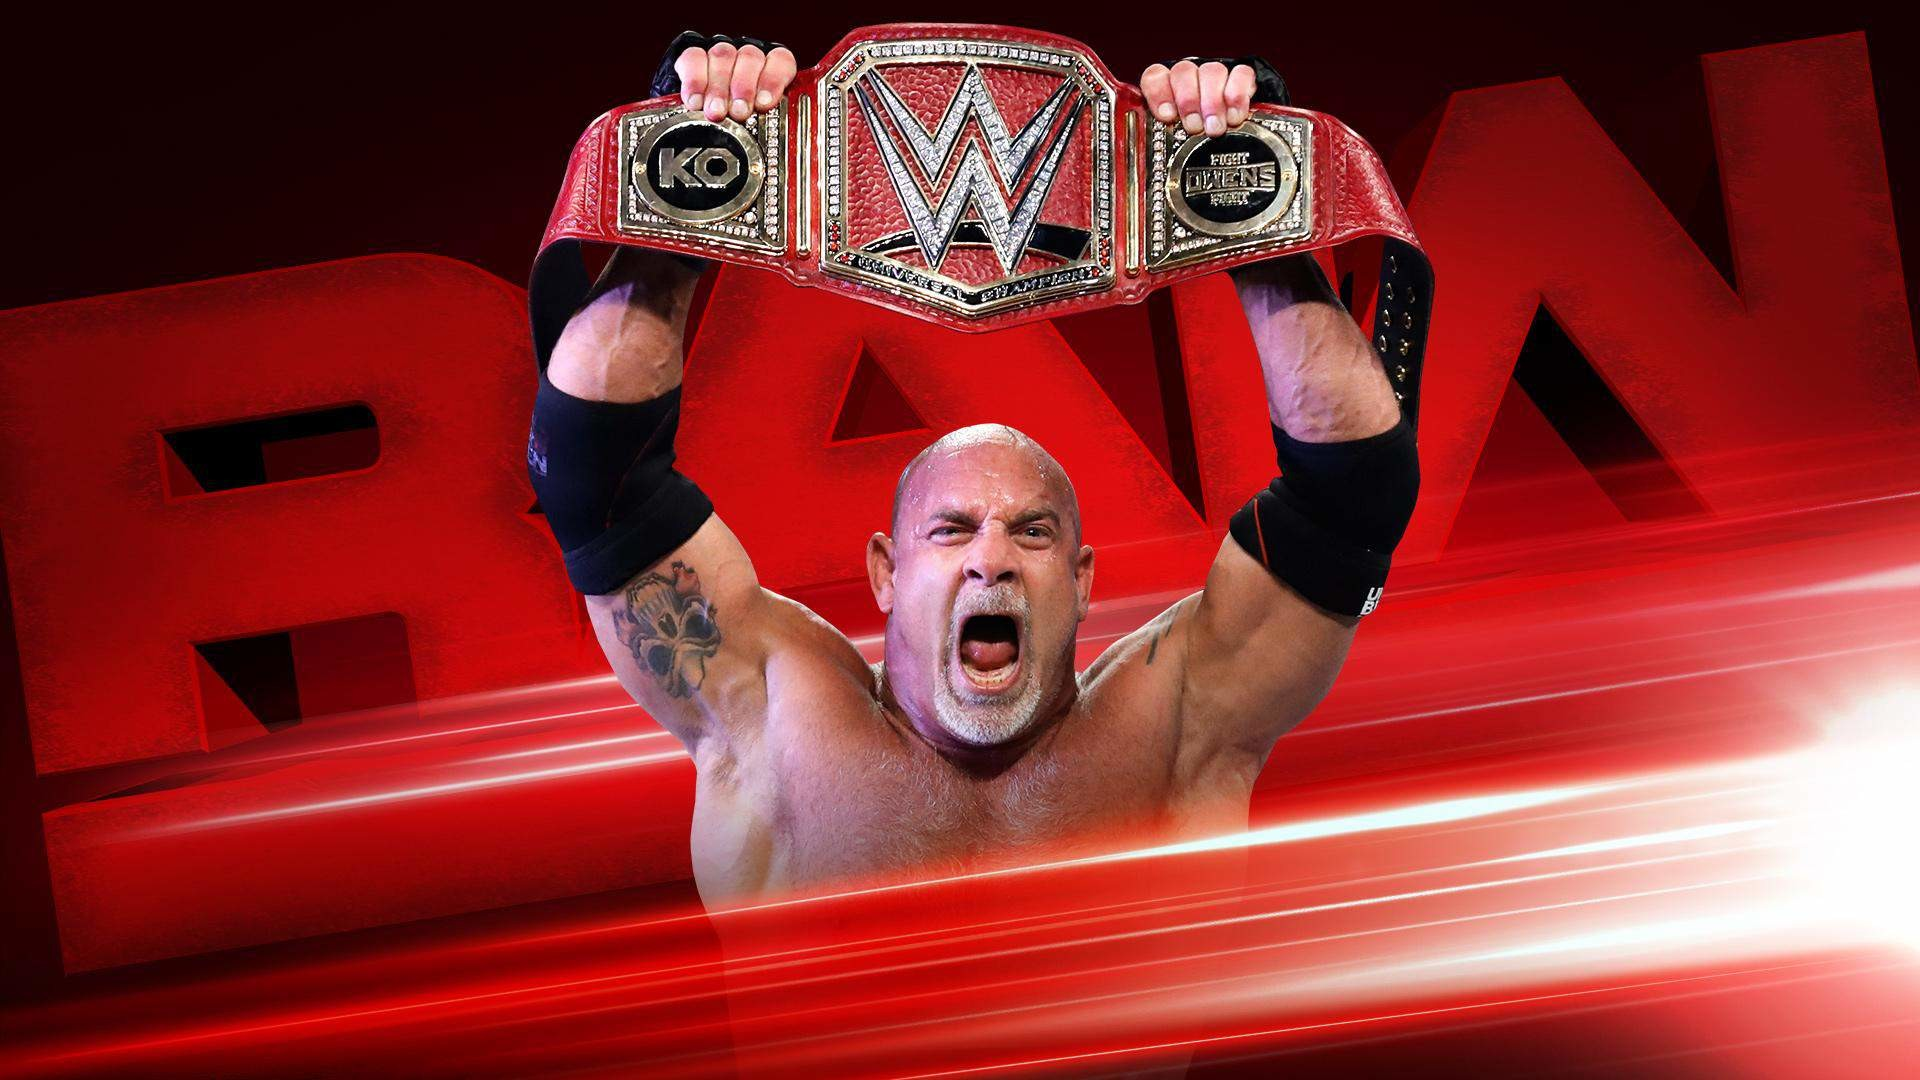 wwe wallpaper